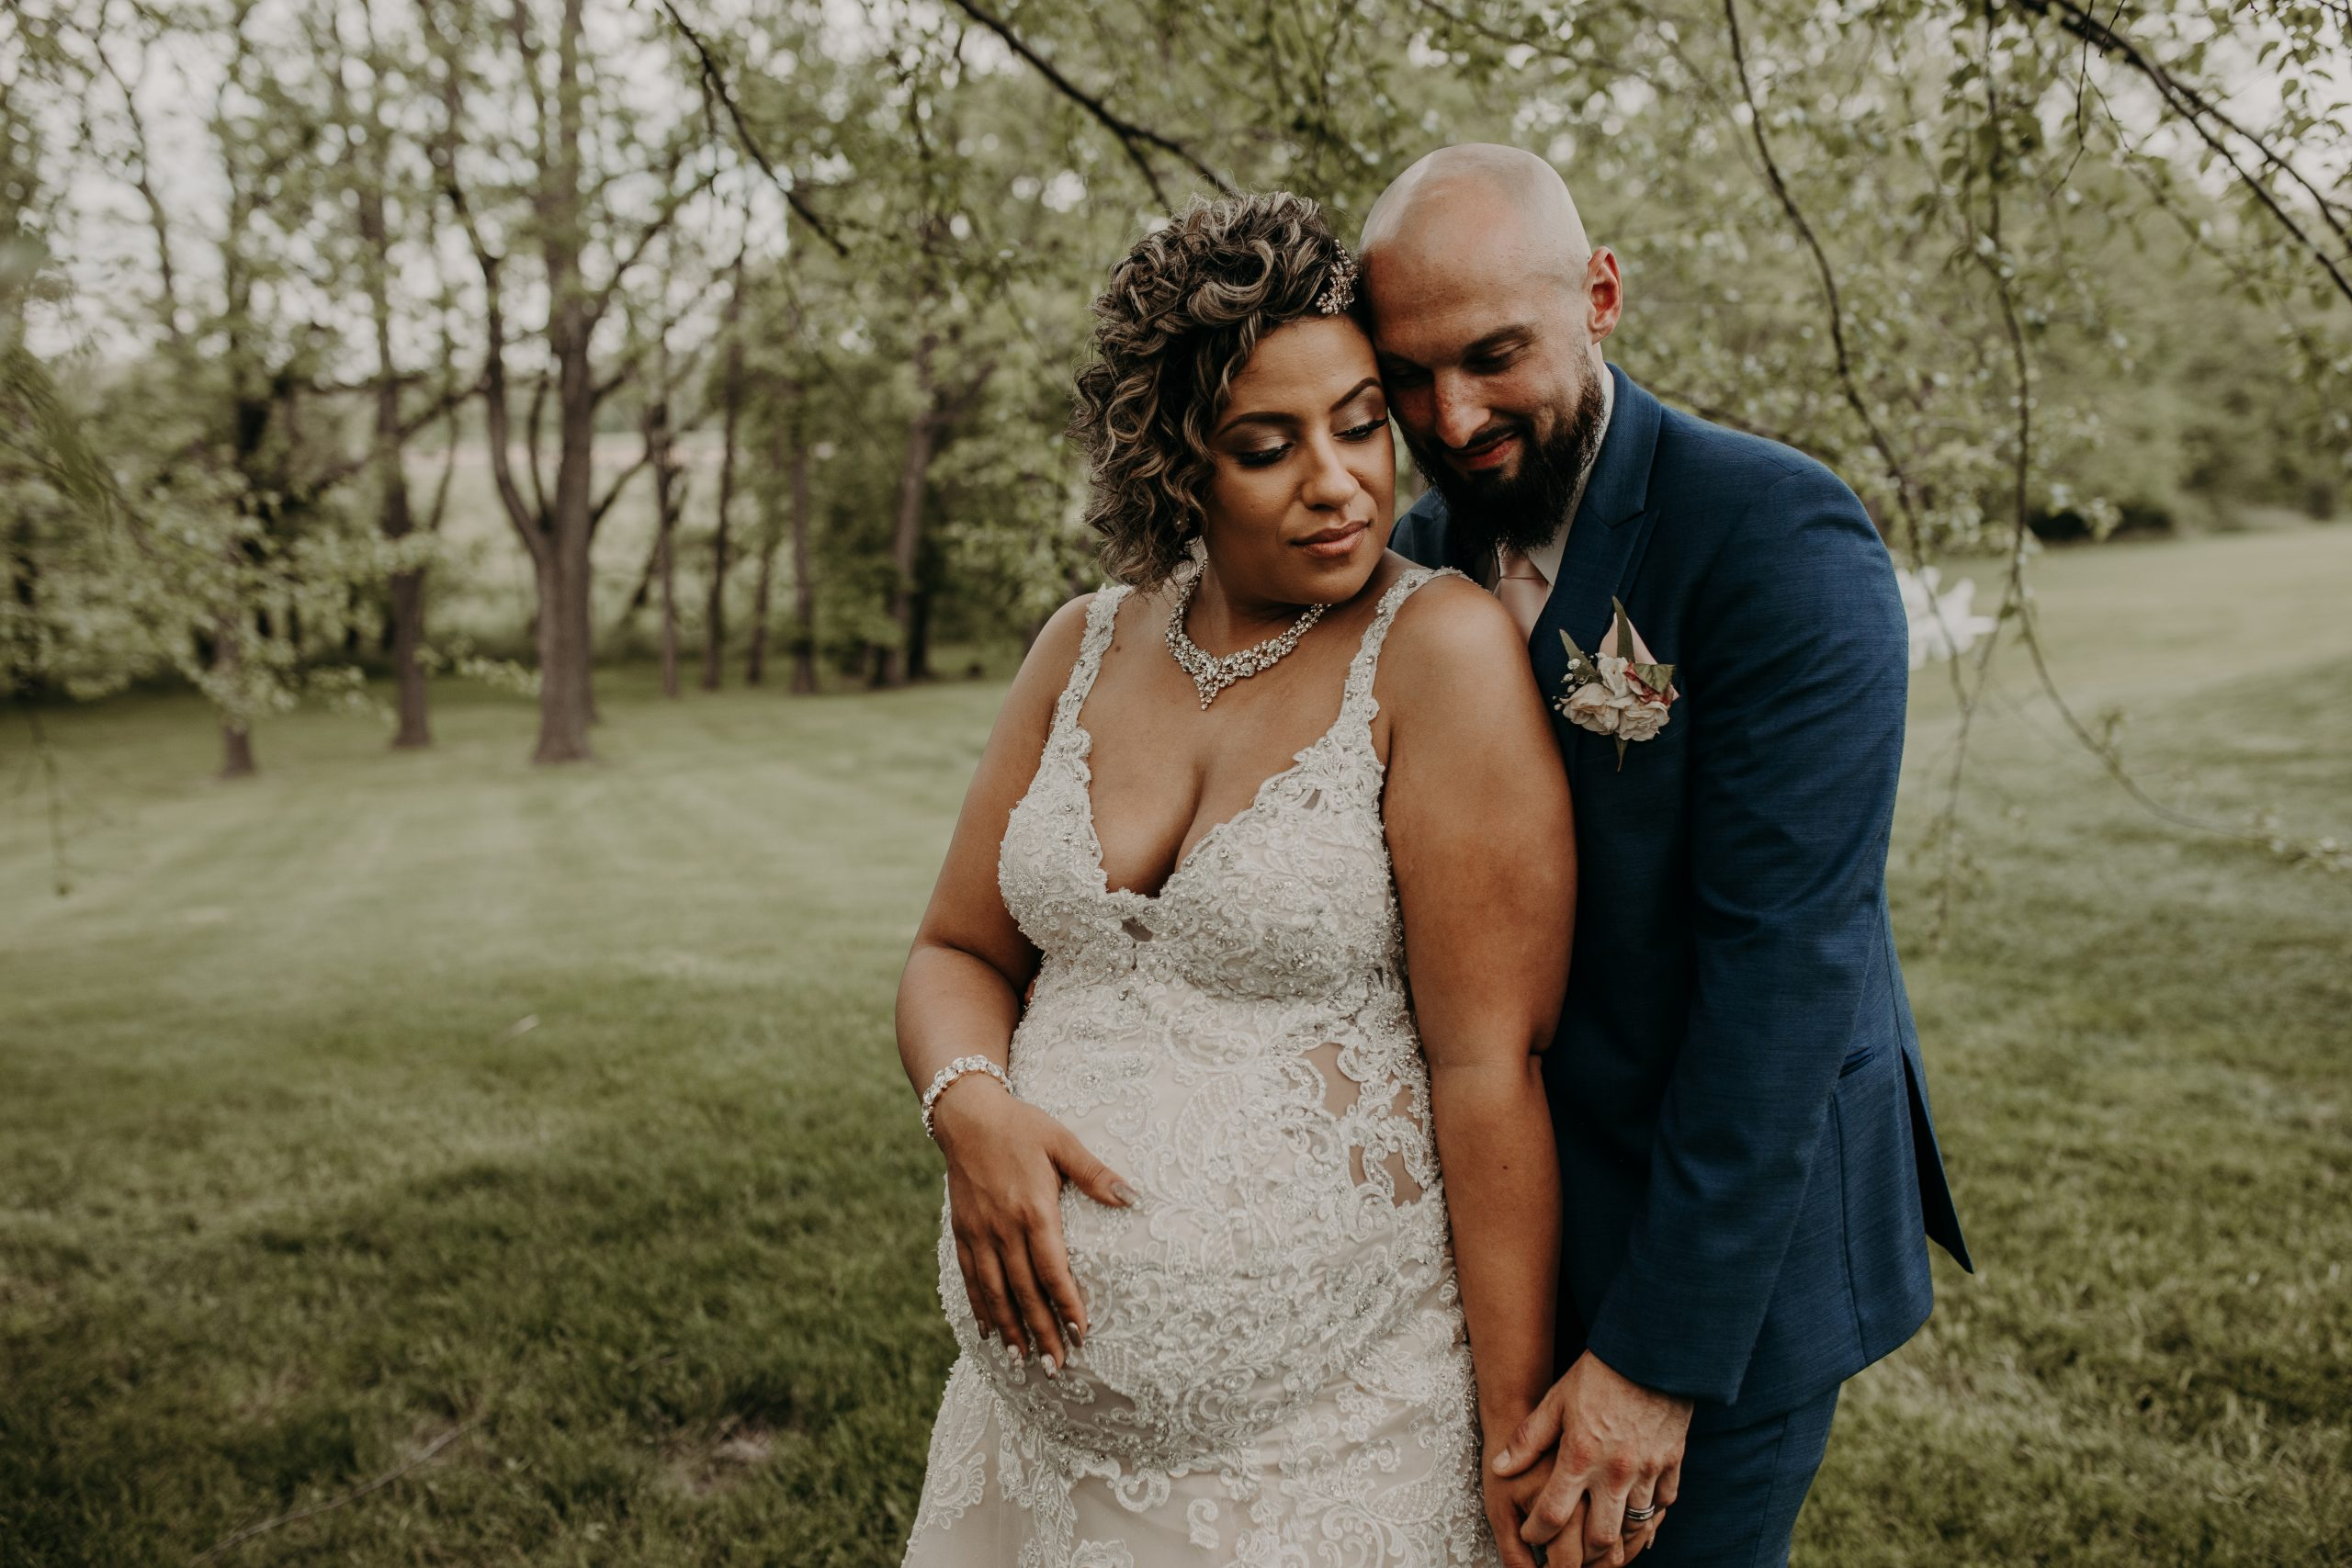 married and expecting! Christine and Richard wed on the Chestnut Hill Villa grounds on May of 2019. This organic ethereal styled wedding was captured by Garnet Dahlia Photography and featured on Dream Weddings.